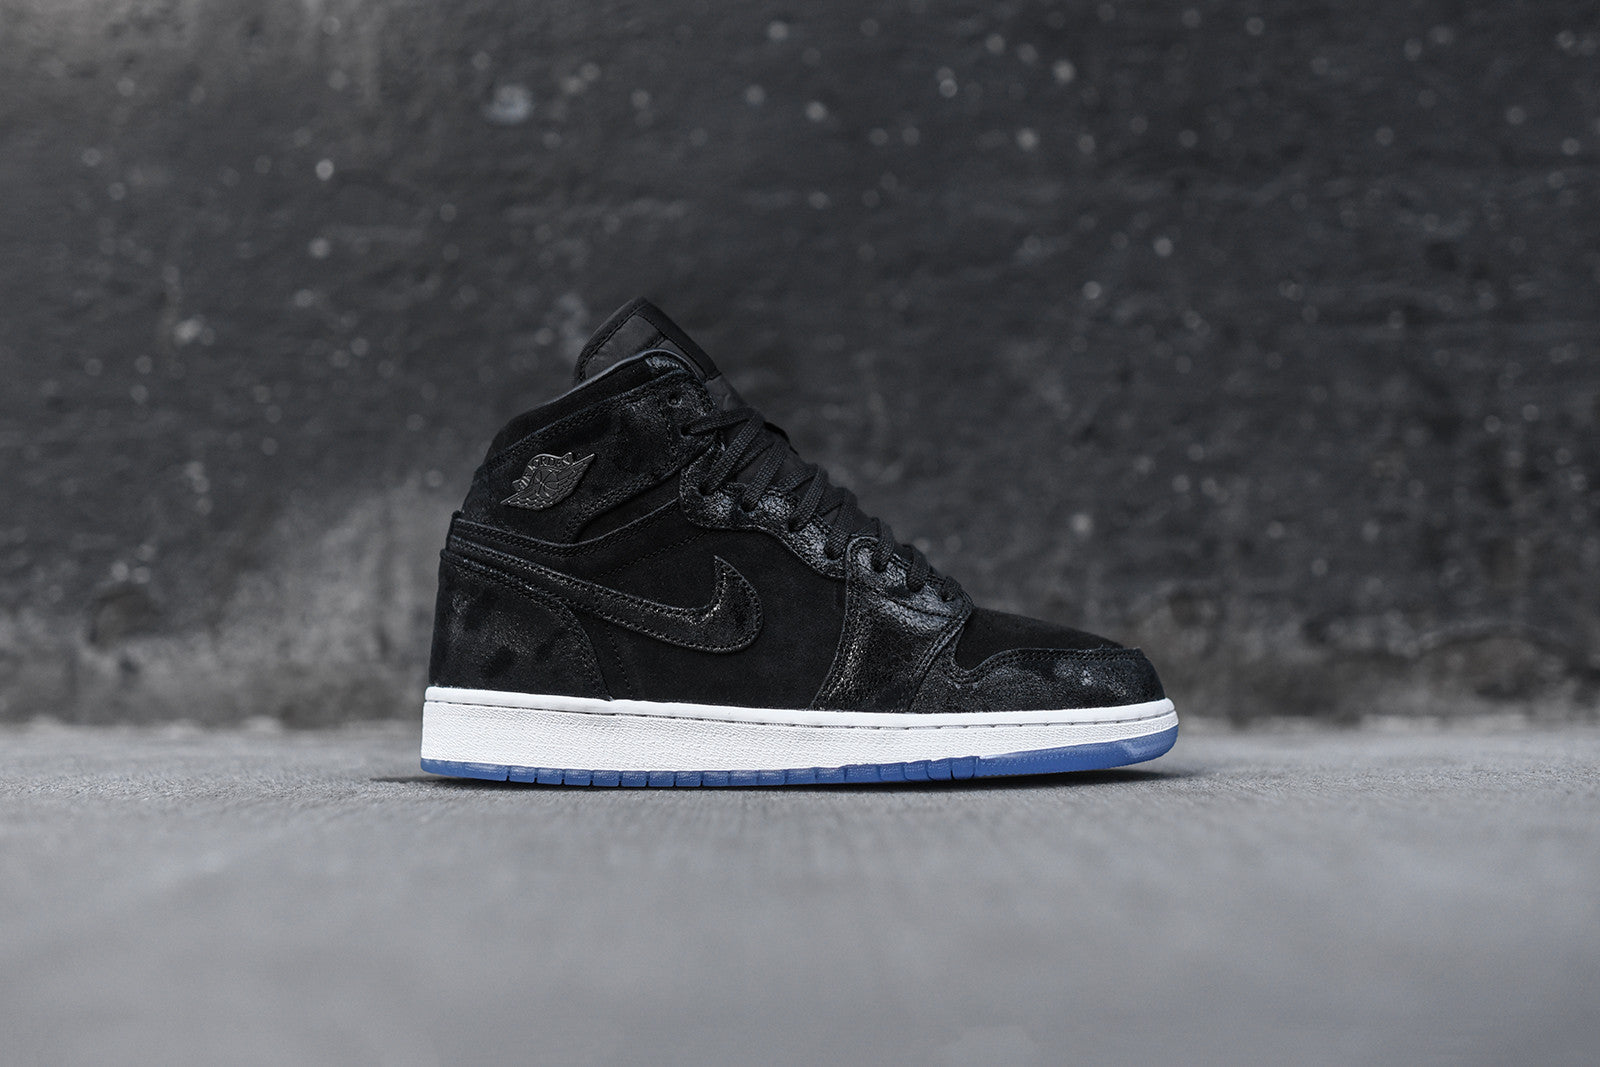 Nike GS Air Jordan 1 Retro High PRM - Black / White